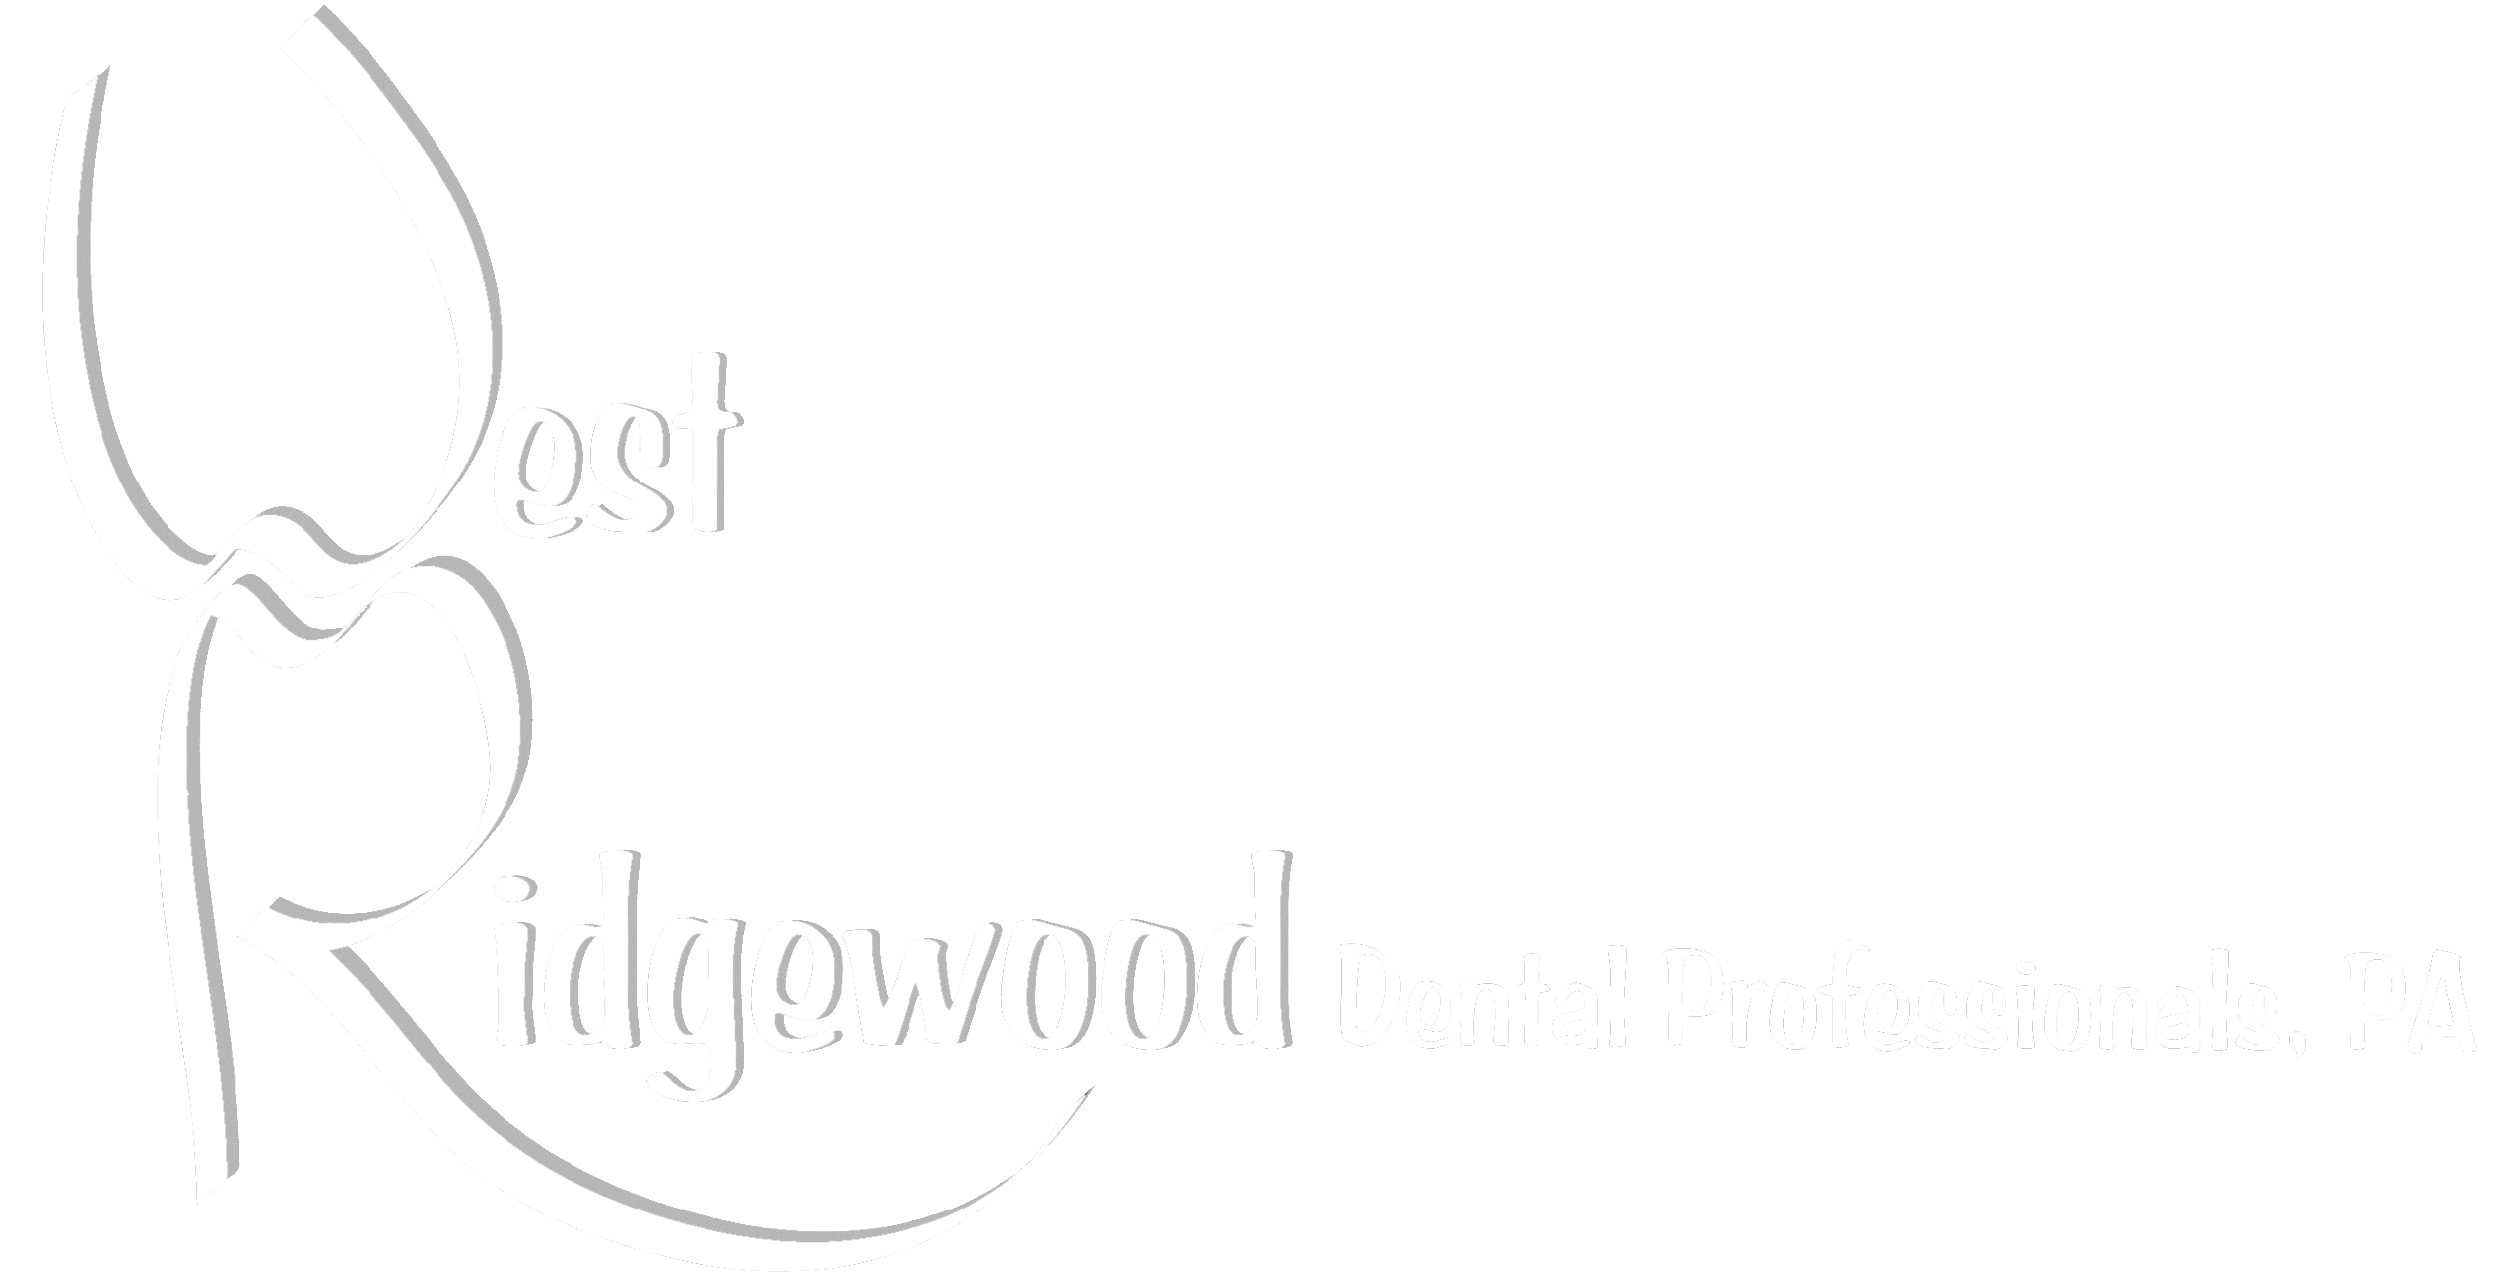 West Ridgewood Dental Professional, PA Logo Transparent White.png